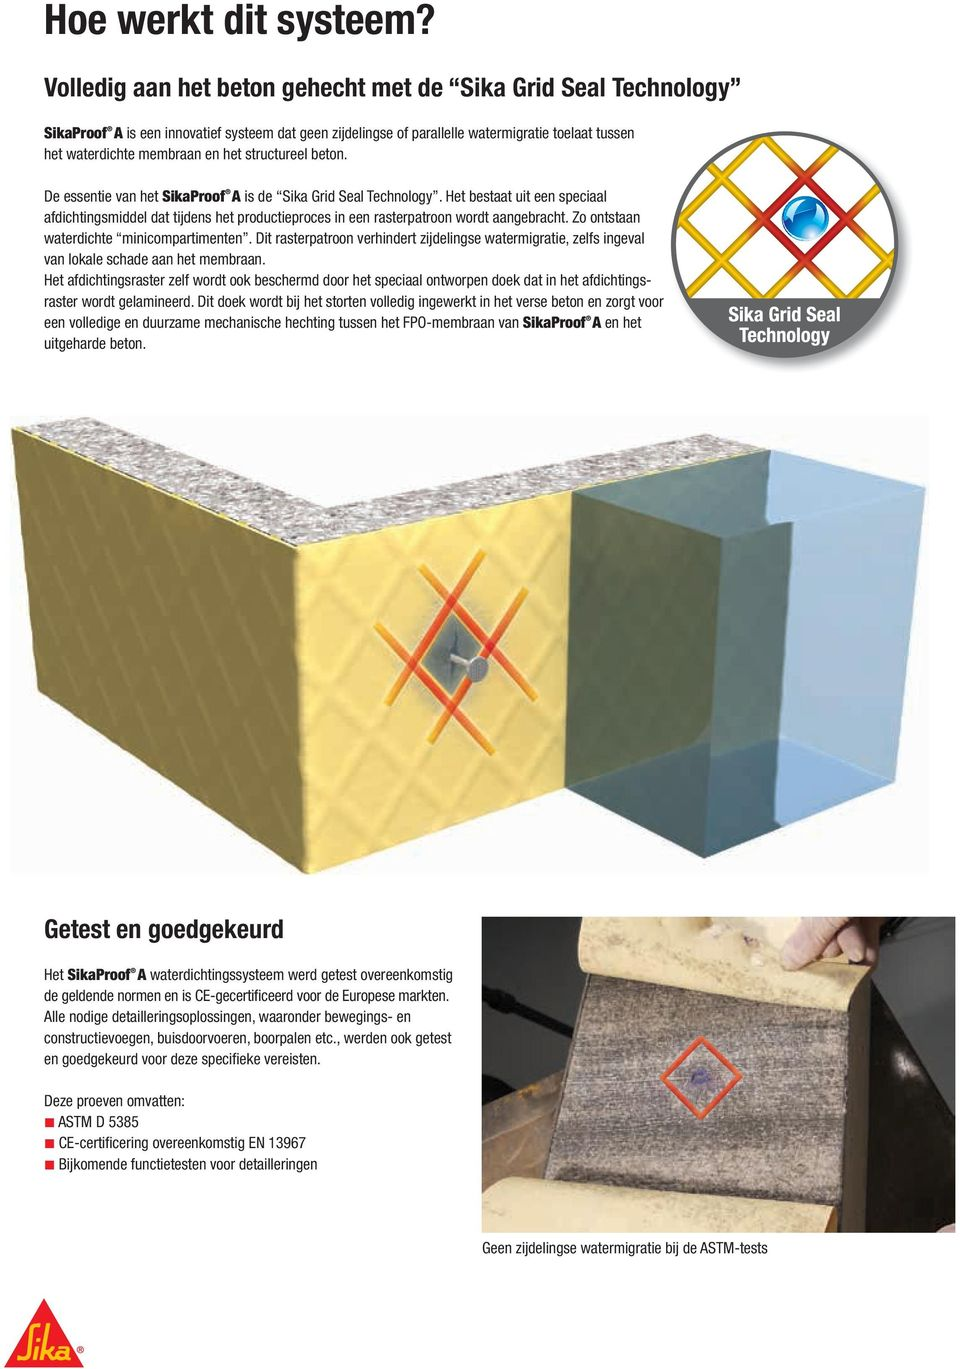 structureel beton. De essentie van het SikaProof A is de Sika Grid Seal Technology.